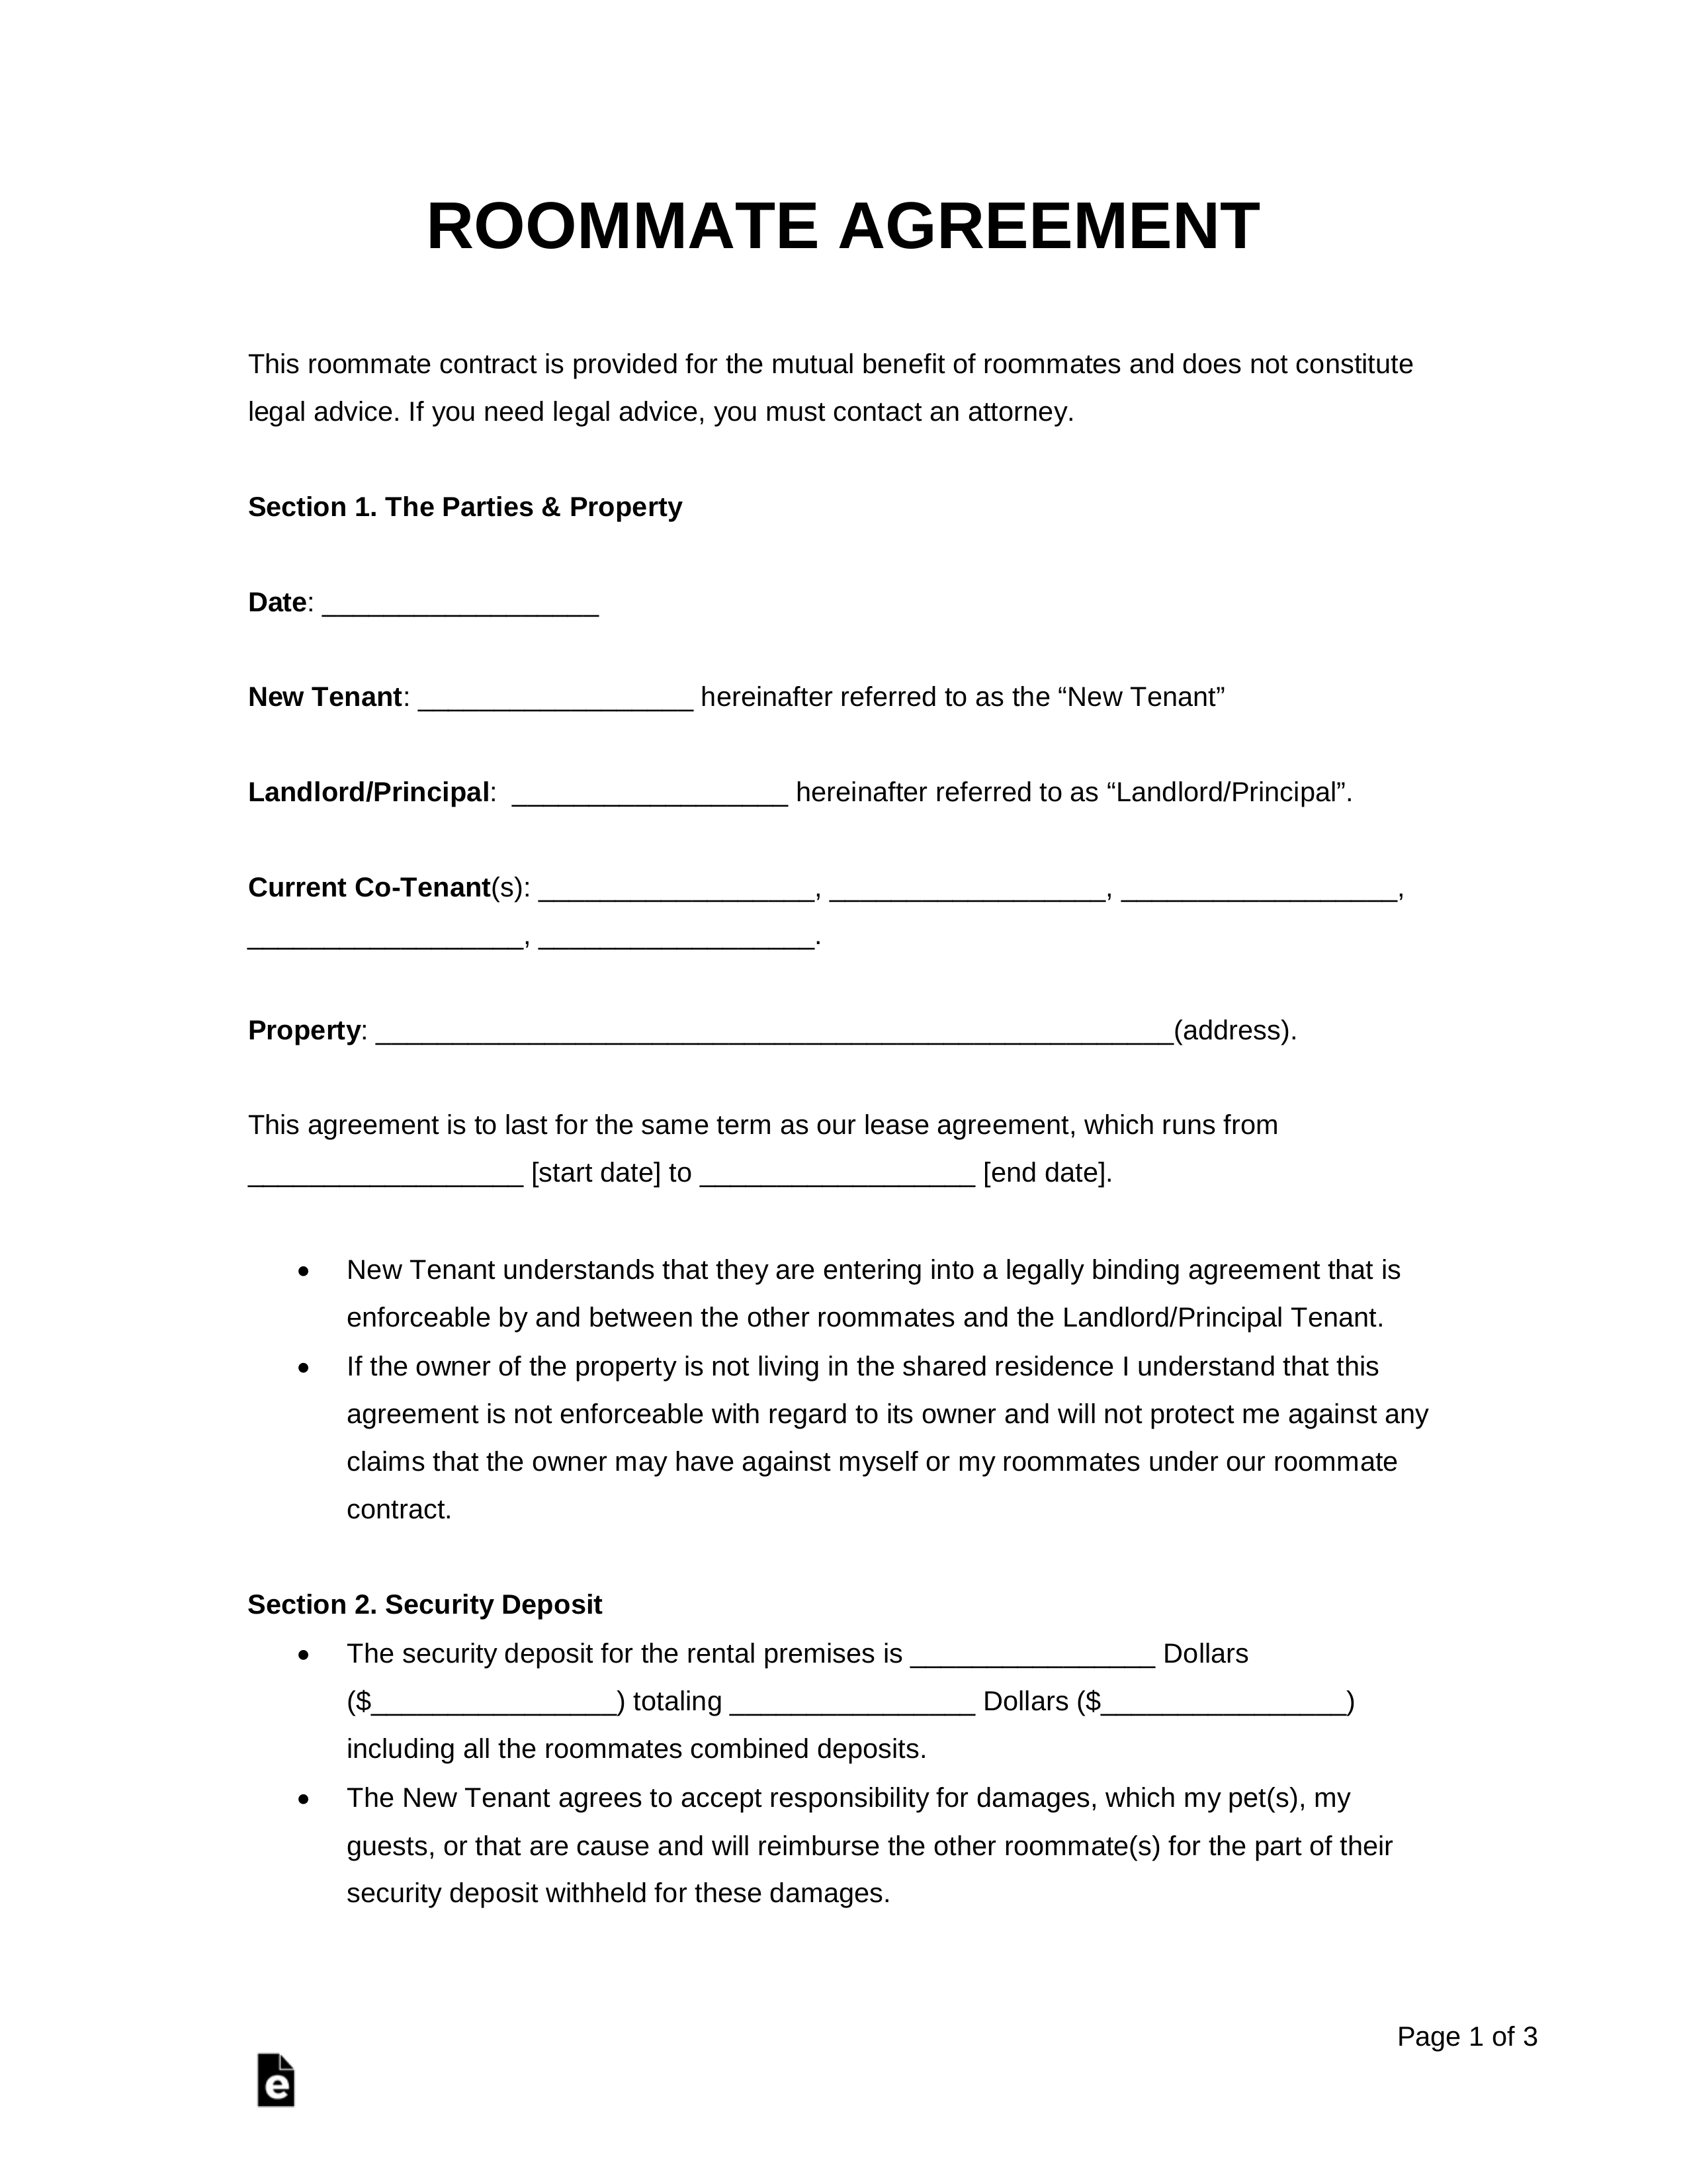 Room Rental Roommate Agreement Template